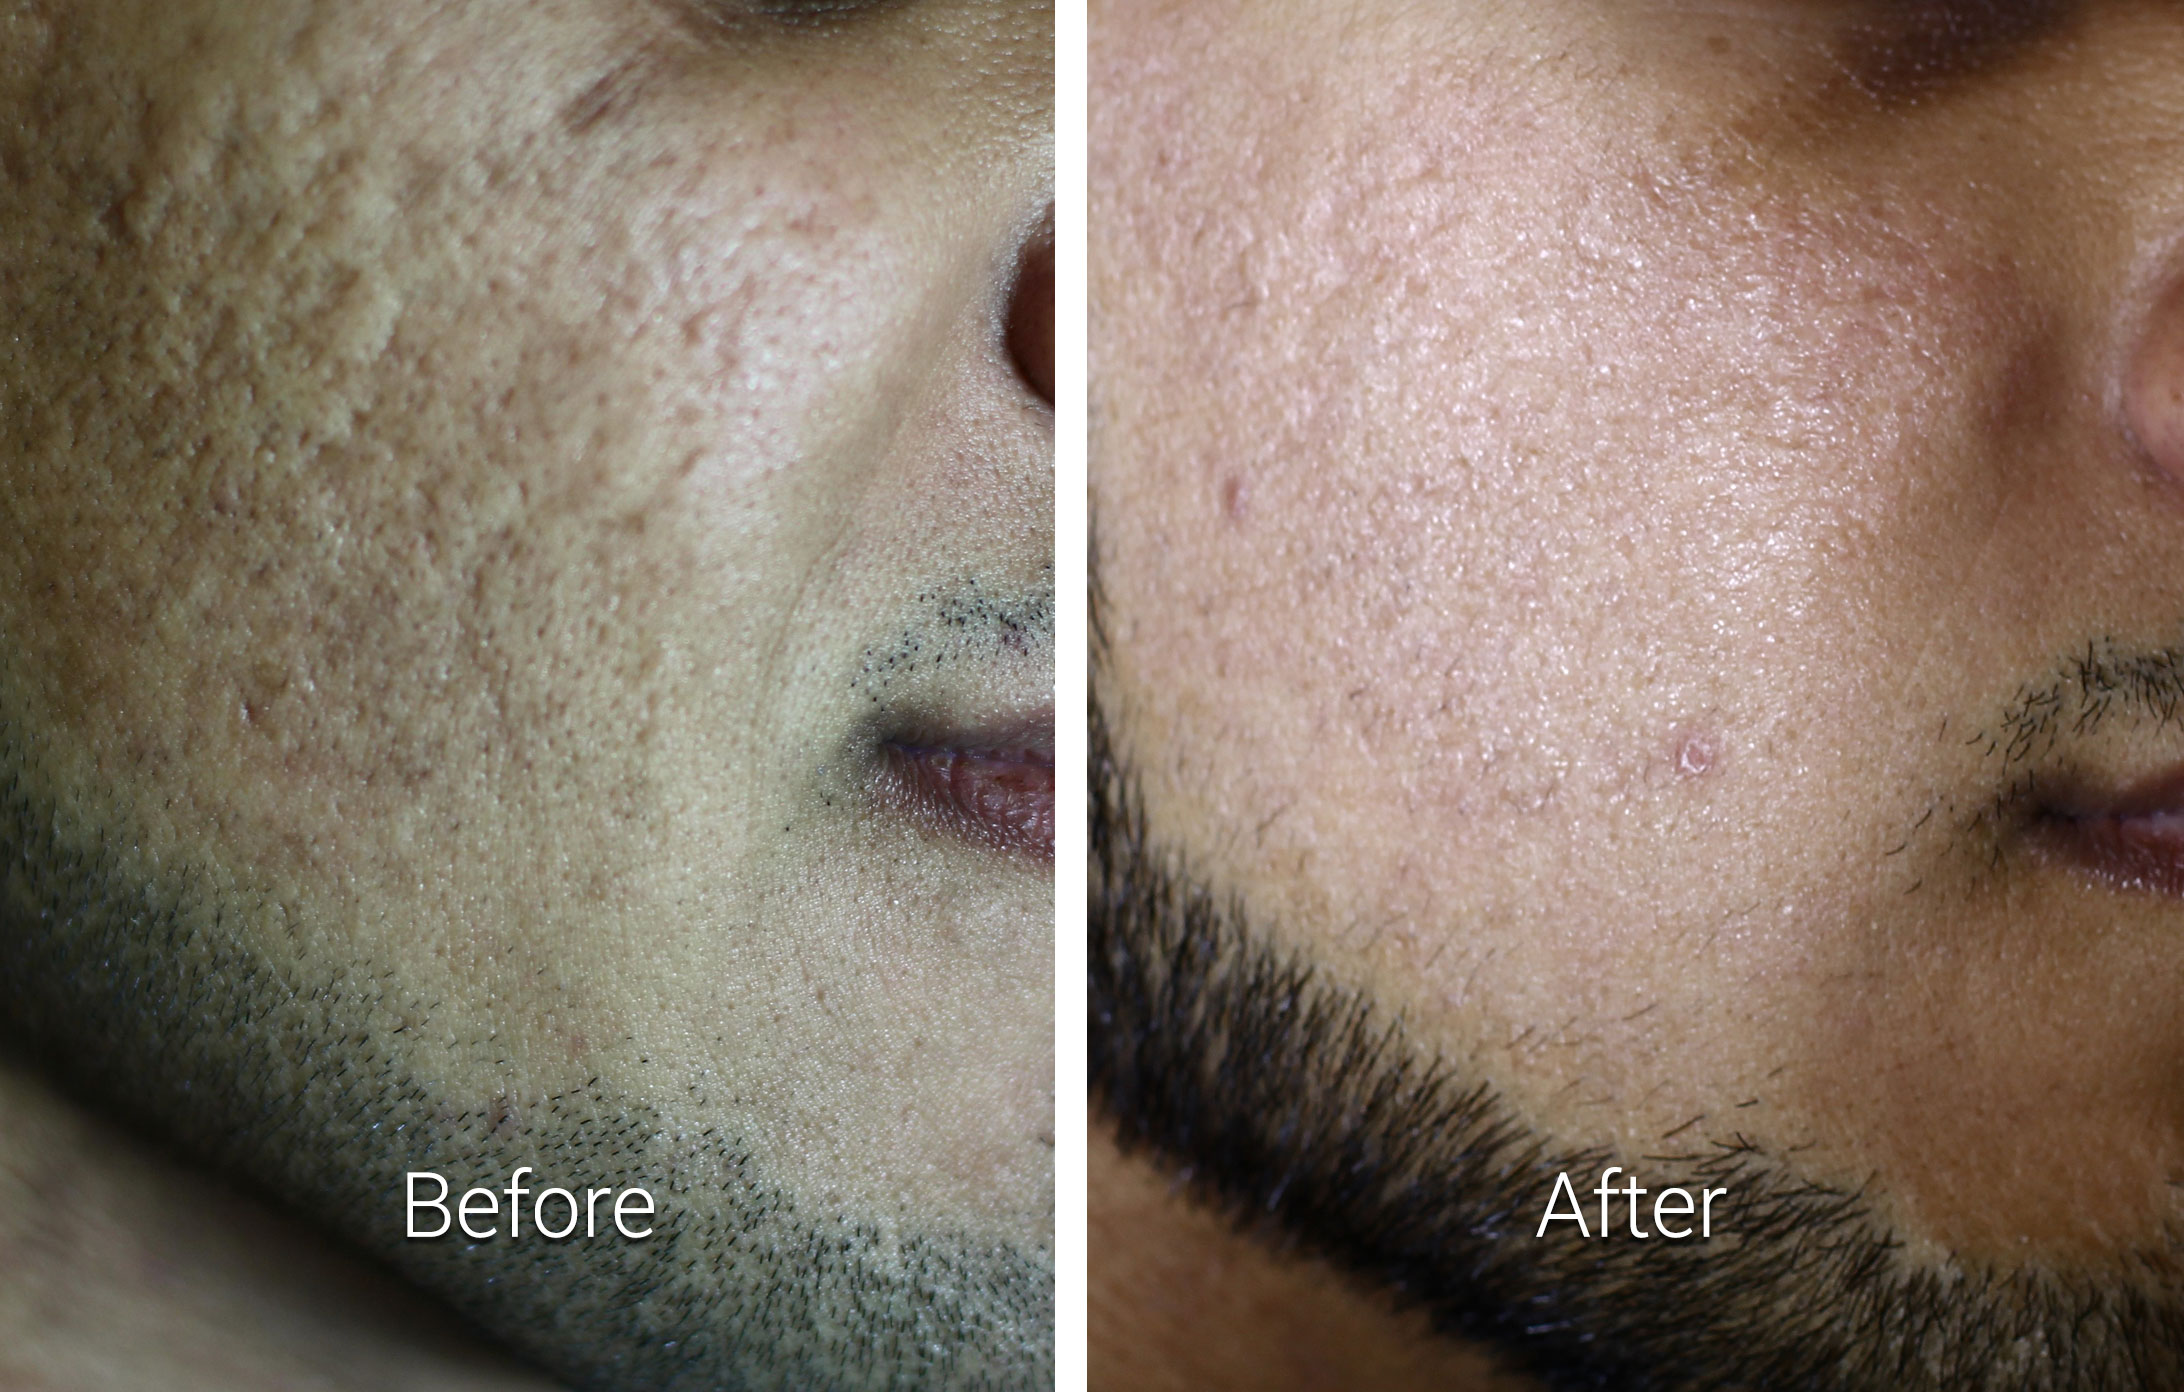 CO2RE Fractional CO2 Resurfacing System results